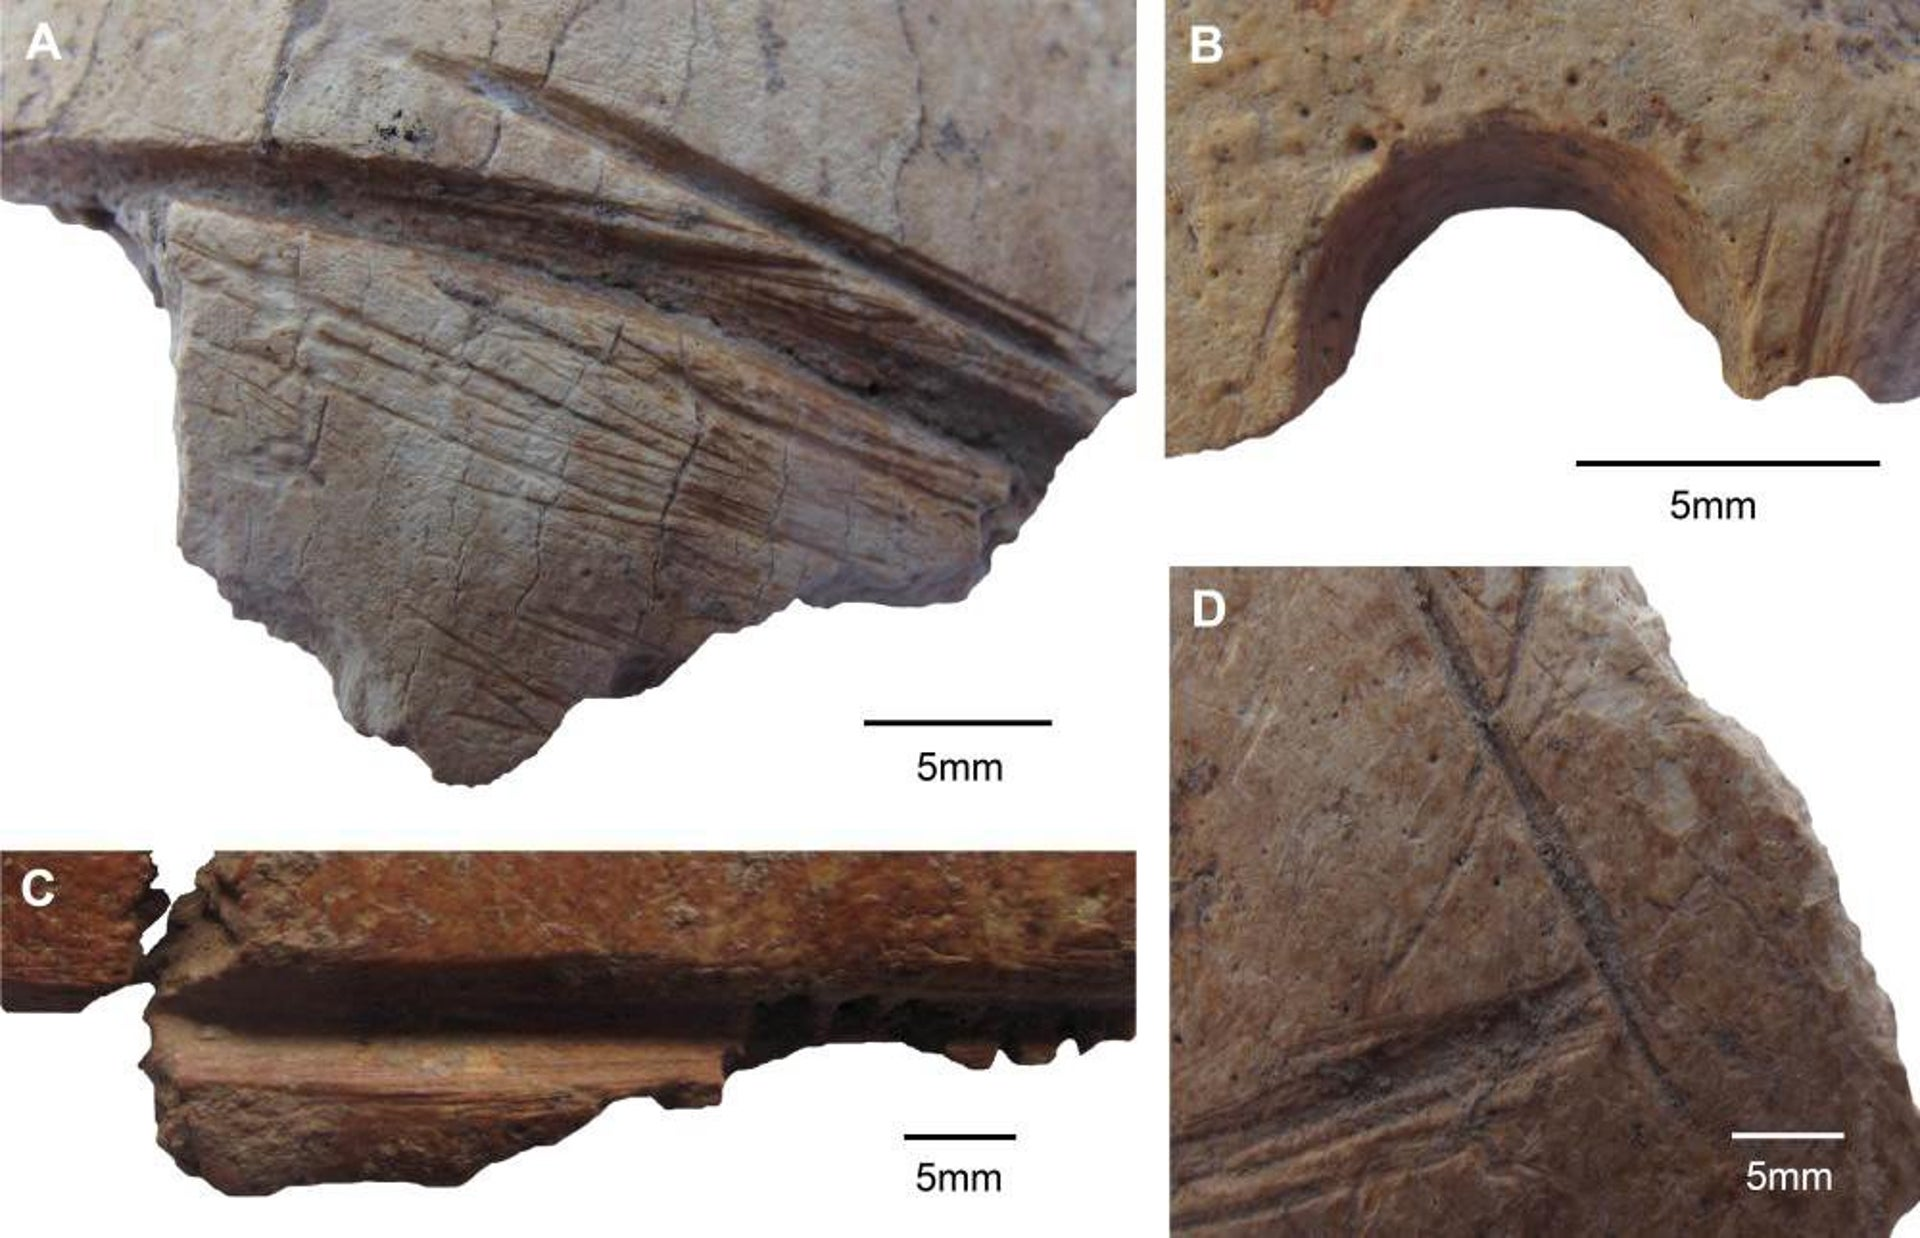 Macroscopic details of artificial skull modifications. A, C, D: carvings, B: drilled perforation.